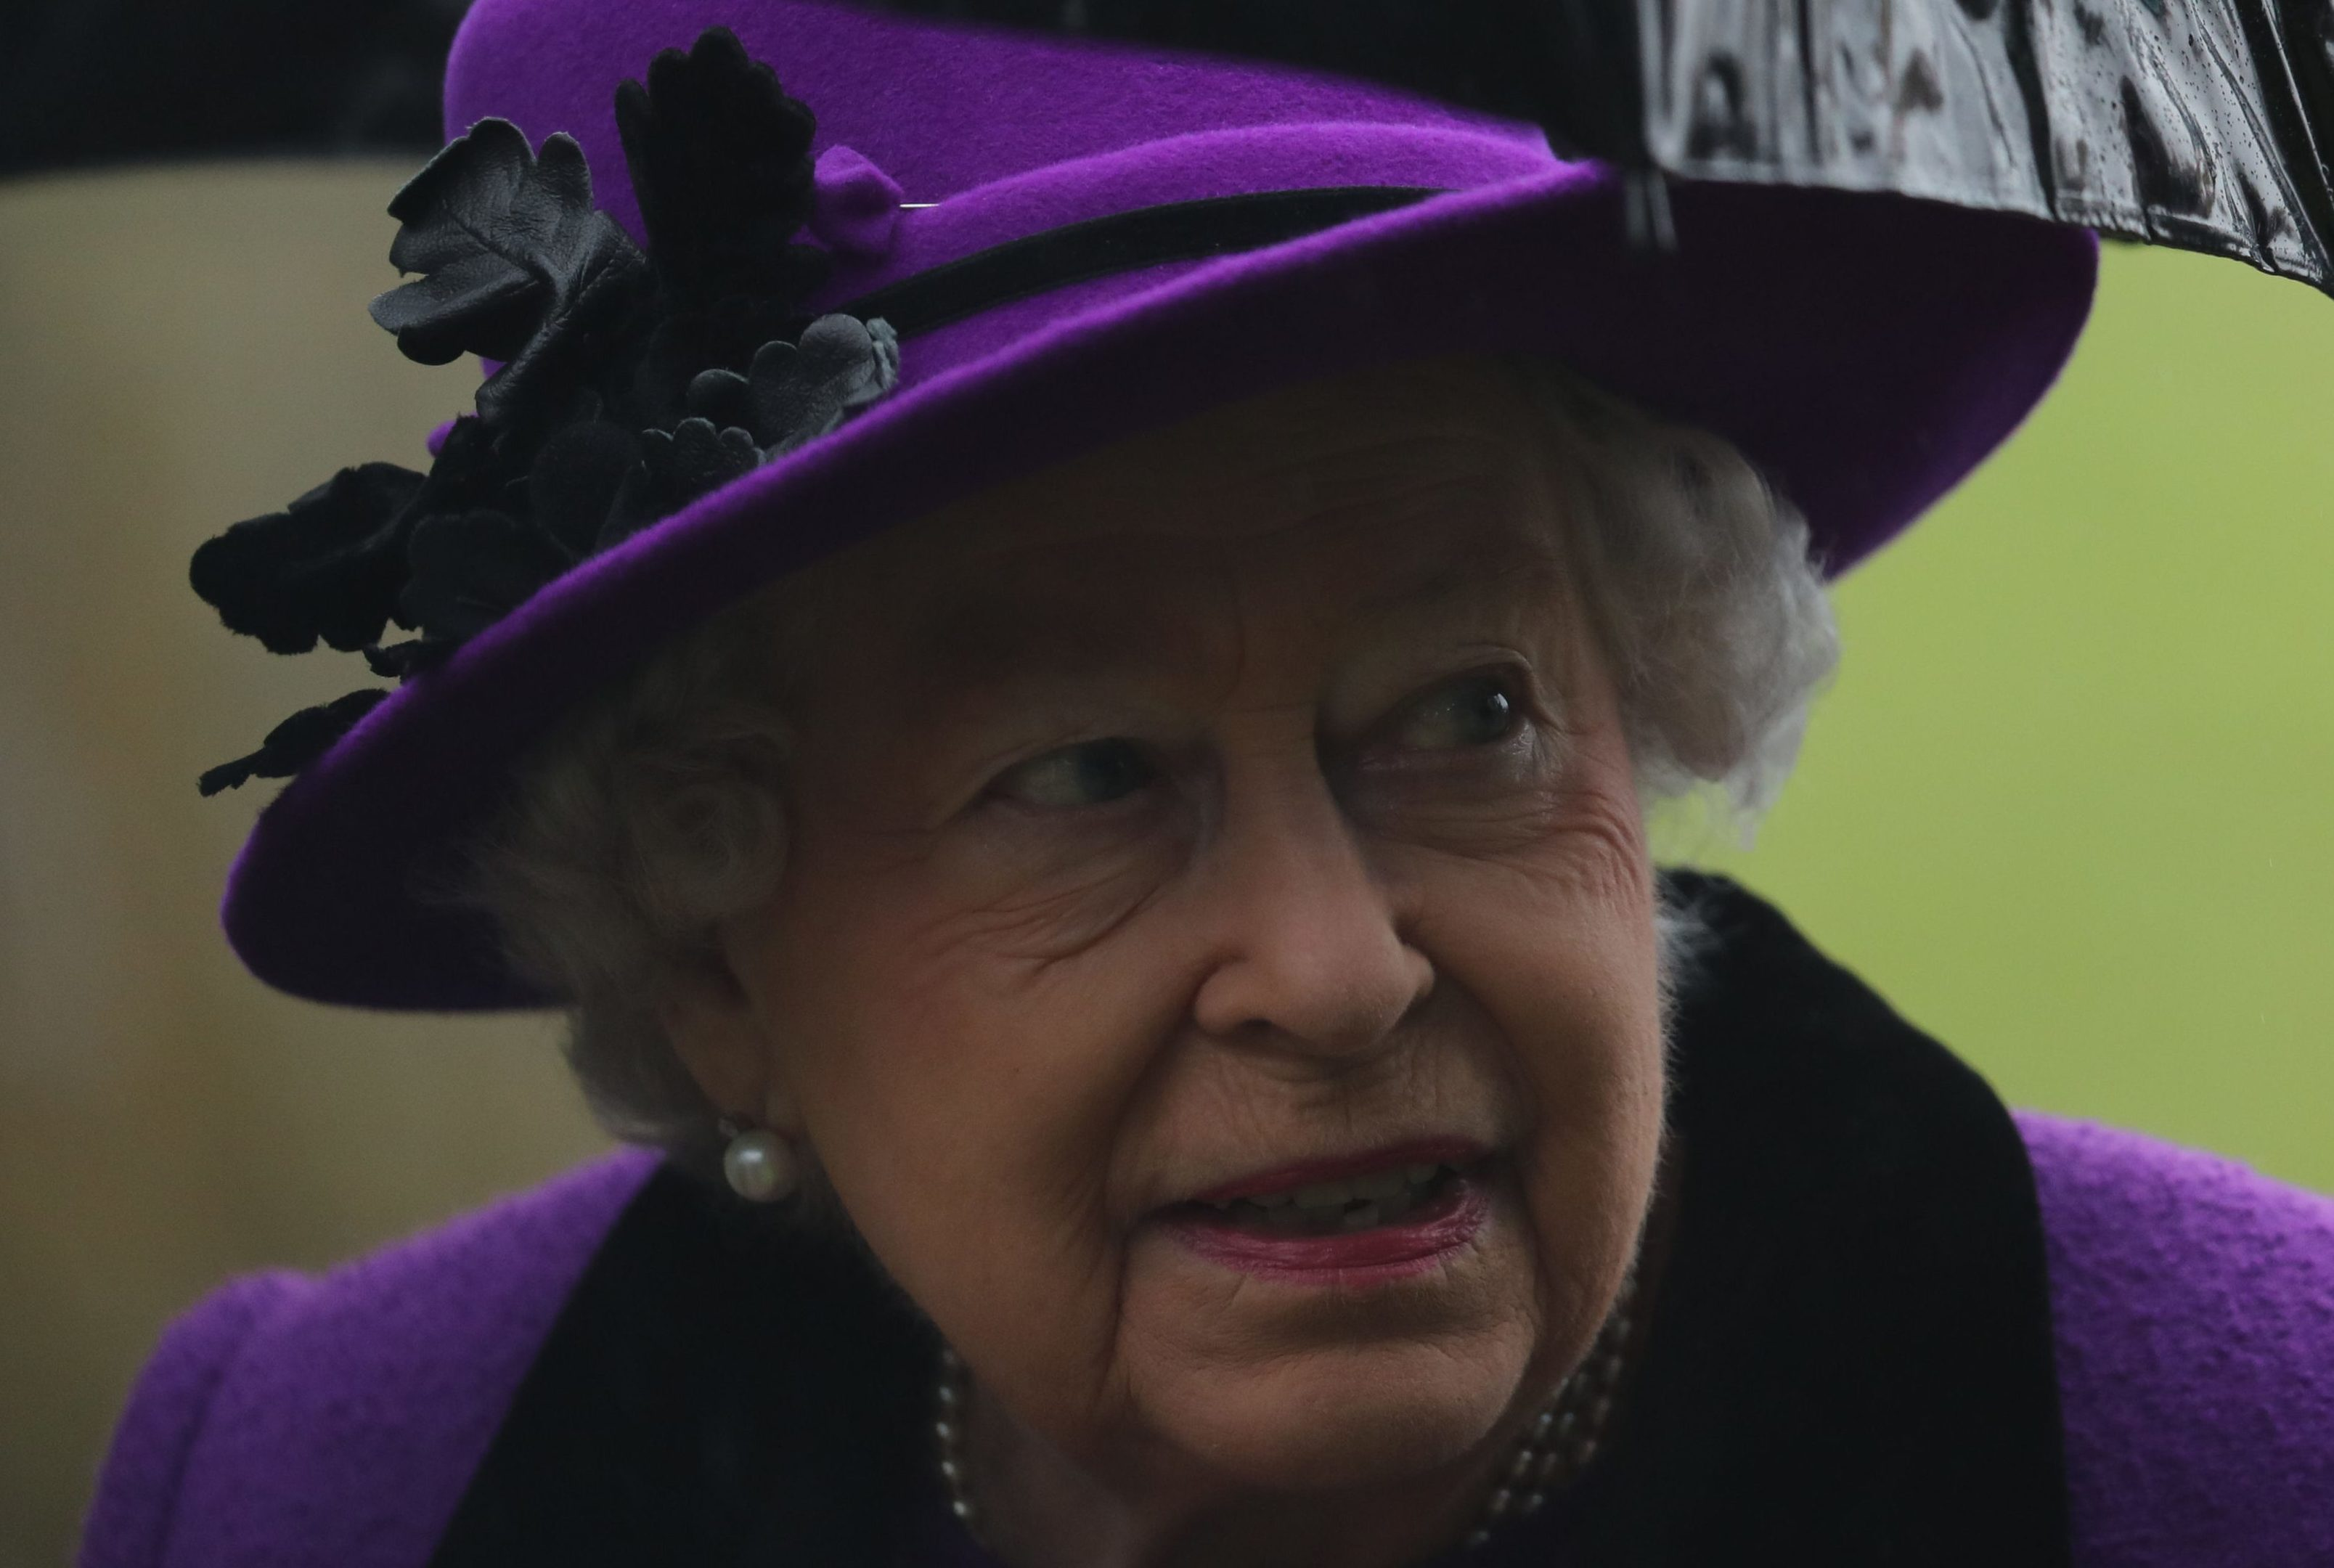 Queen Elizabeth II is now Britain's longest ever monarch